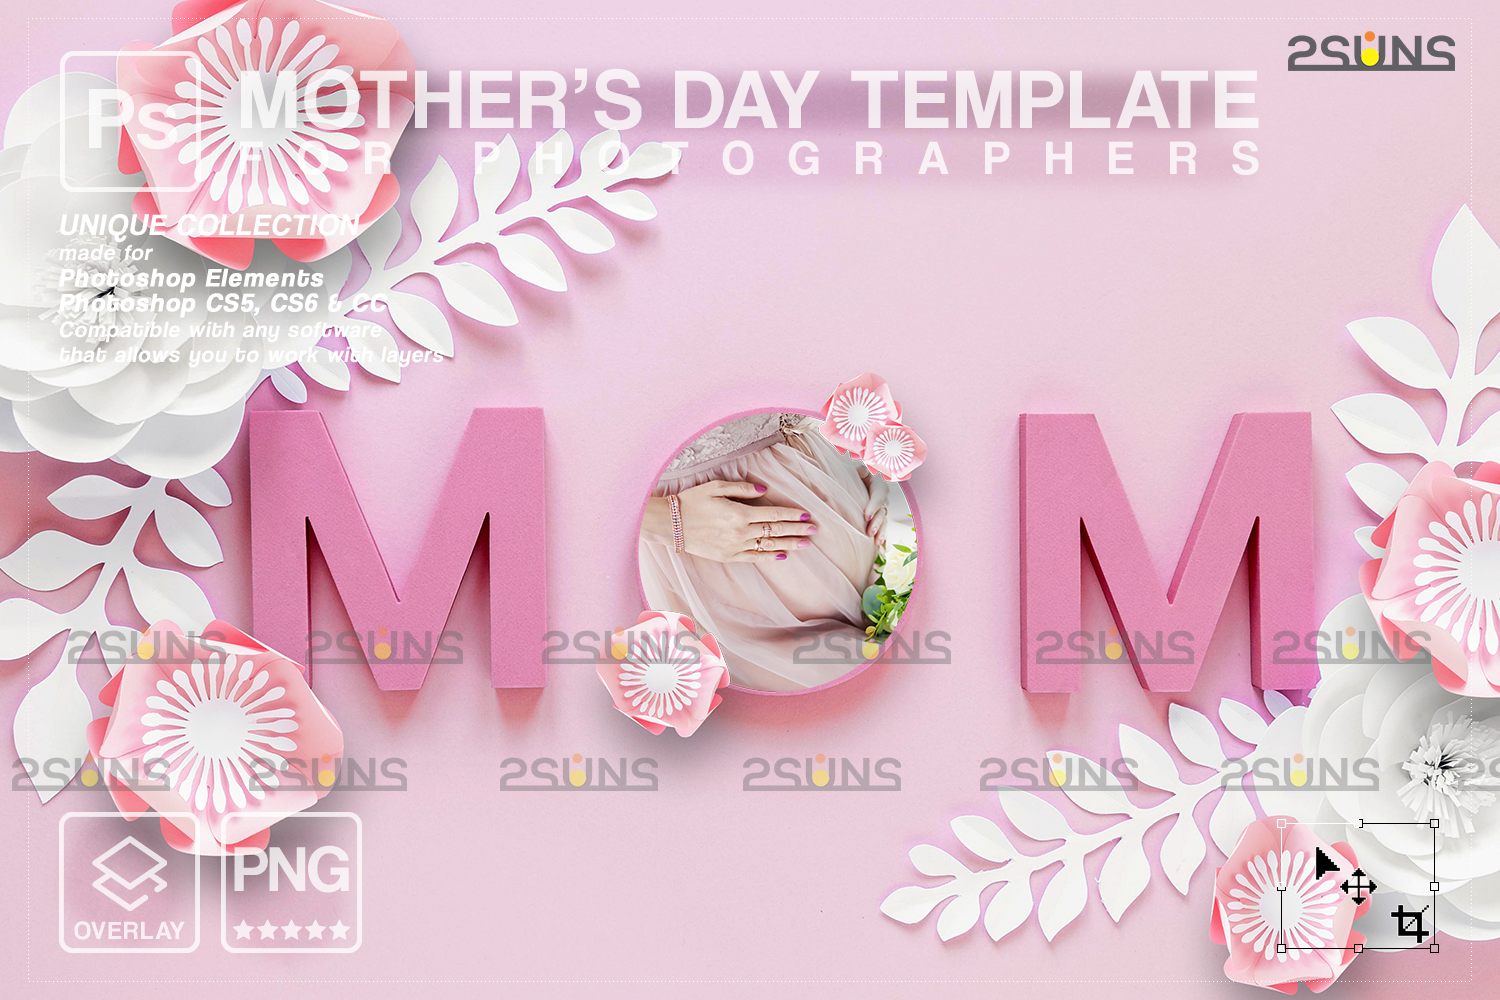 Mothers day cards template & Mothers day overlay: Backdrop flower watercolor frames, Mothers day - 003 107 -